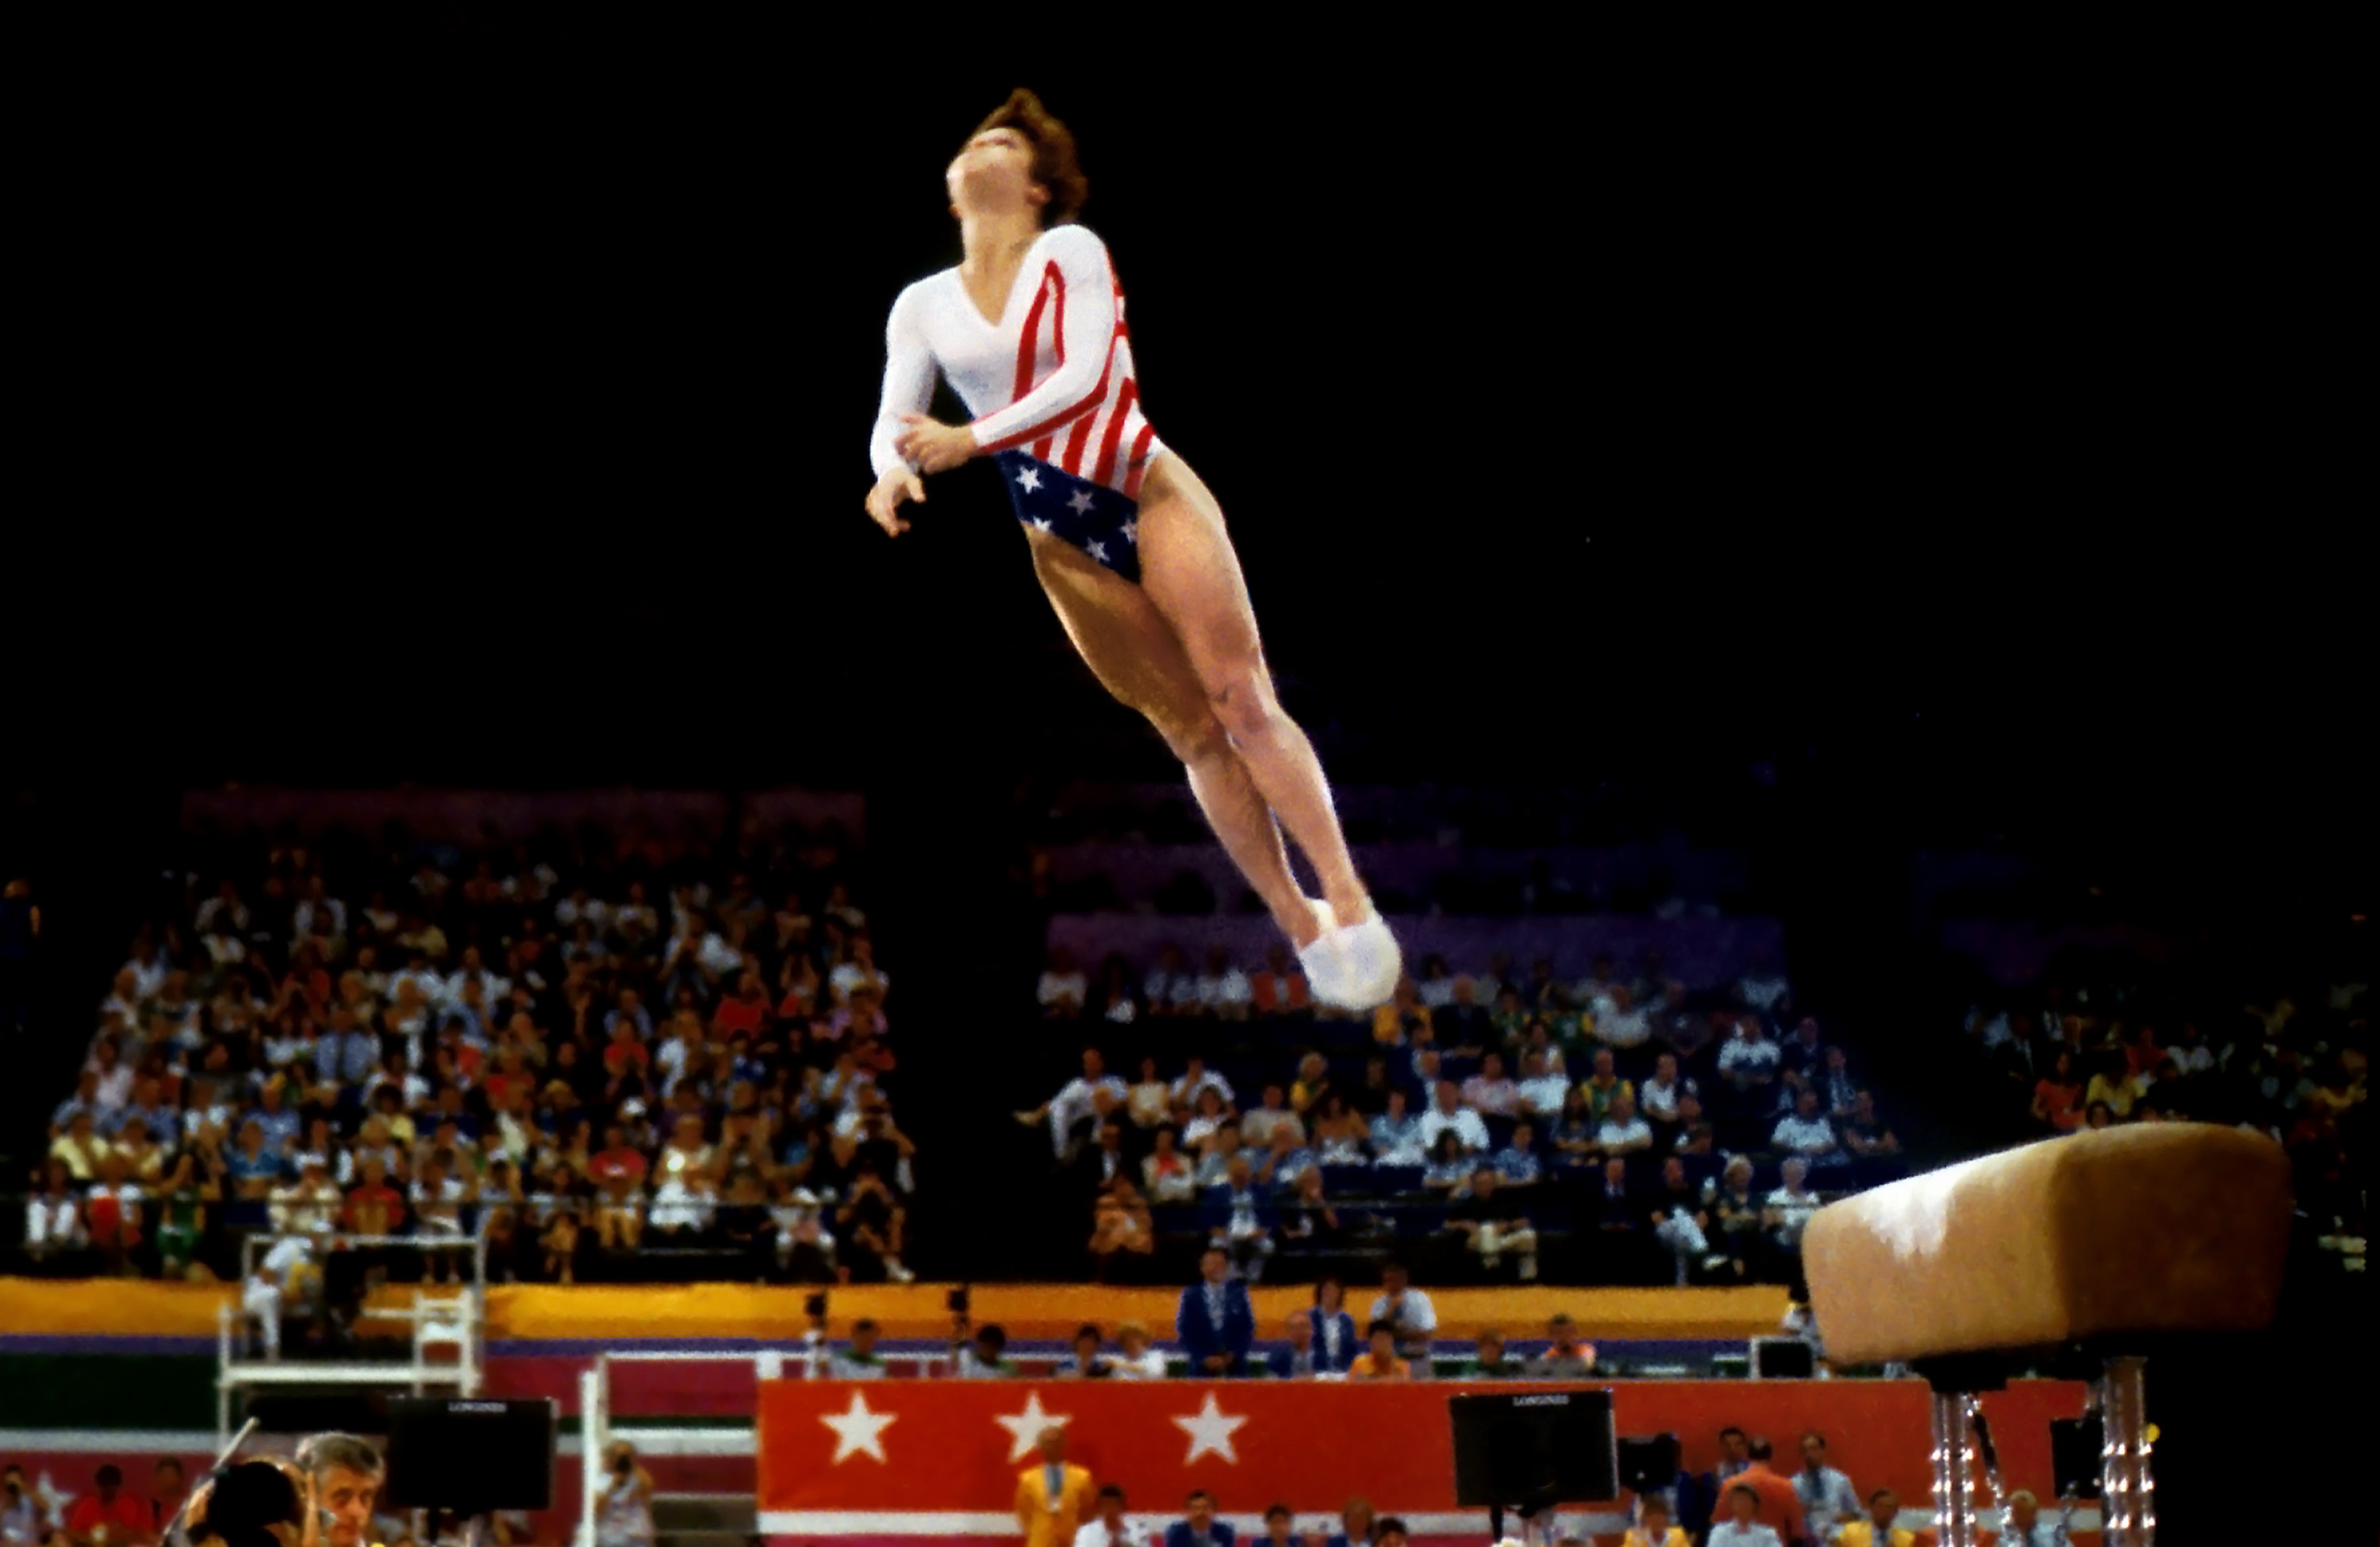 Mary-Lou-Retton-Perfect-Score-10-Vault-1984-Olympics-300dpi